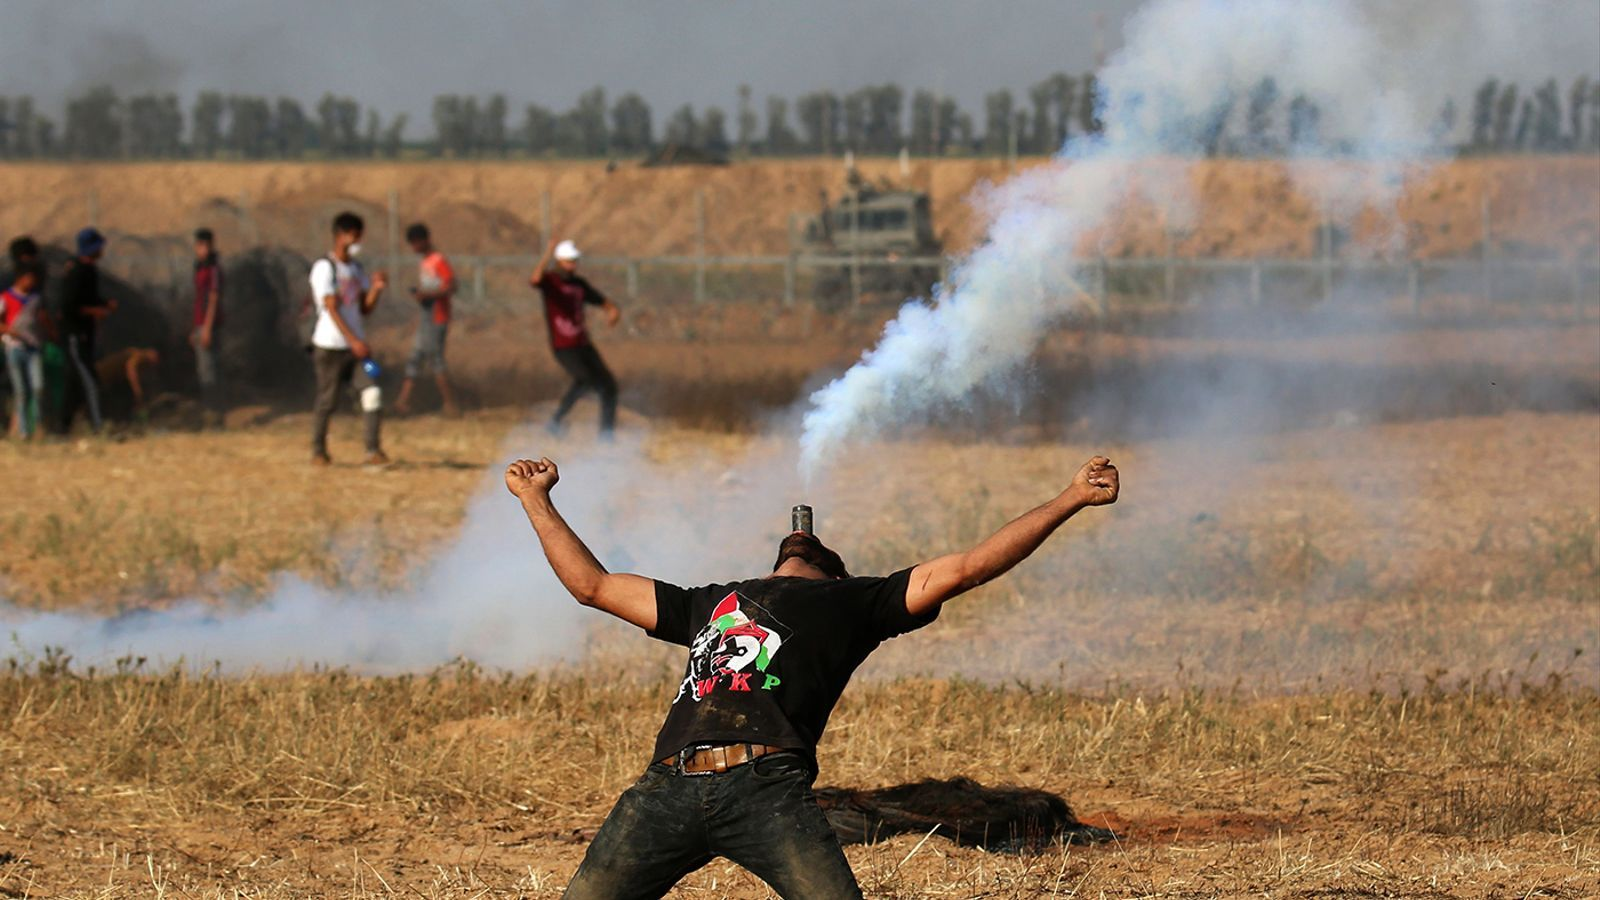 A Palestinian protestor carrying a tear gas cartridge in his mouth during a demonstration along the Israeli border east of Khan Yunis in the southern part of Gaza